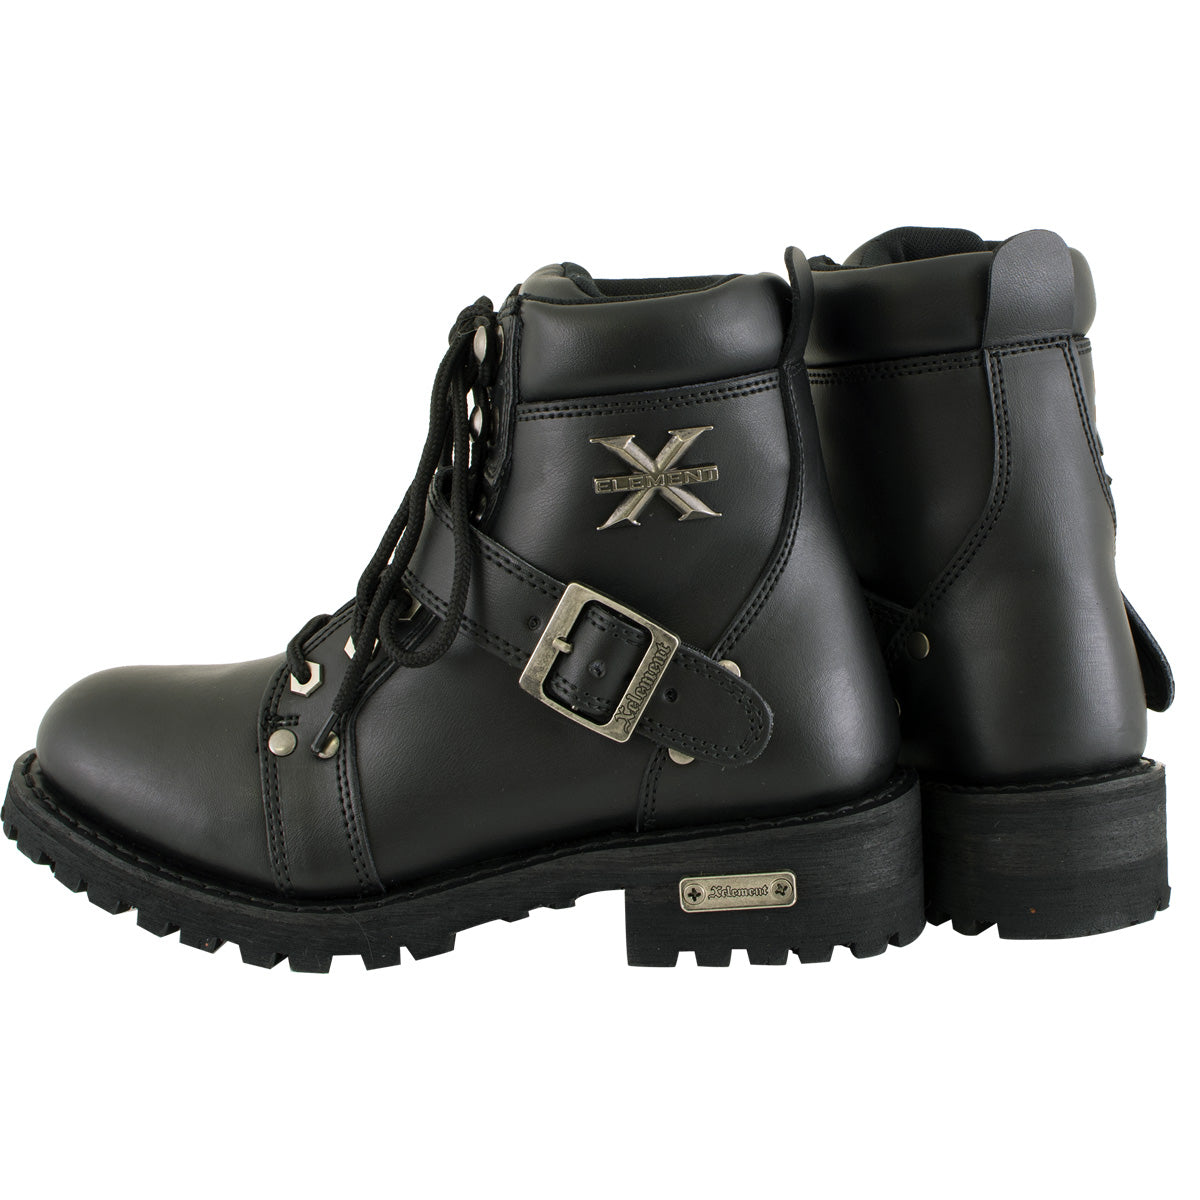 Xelement 2469 Women's Black Advanced Lace Up Motorcycle Biker Boots